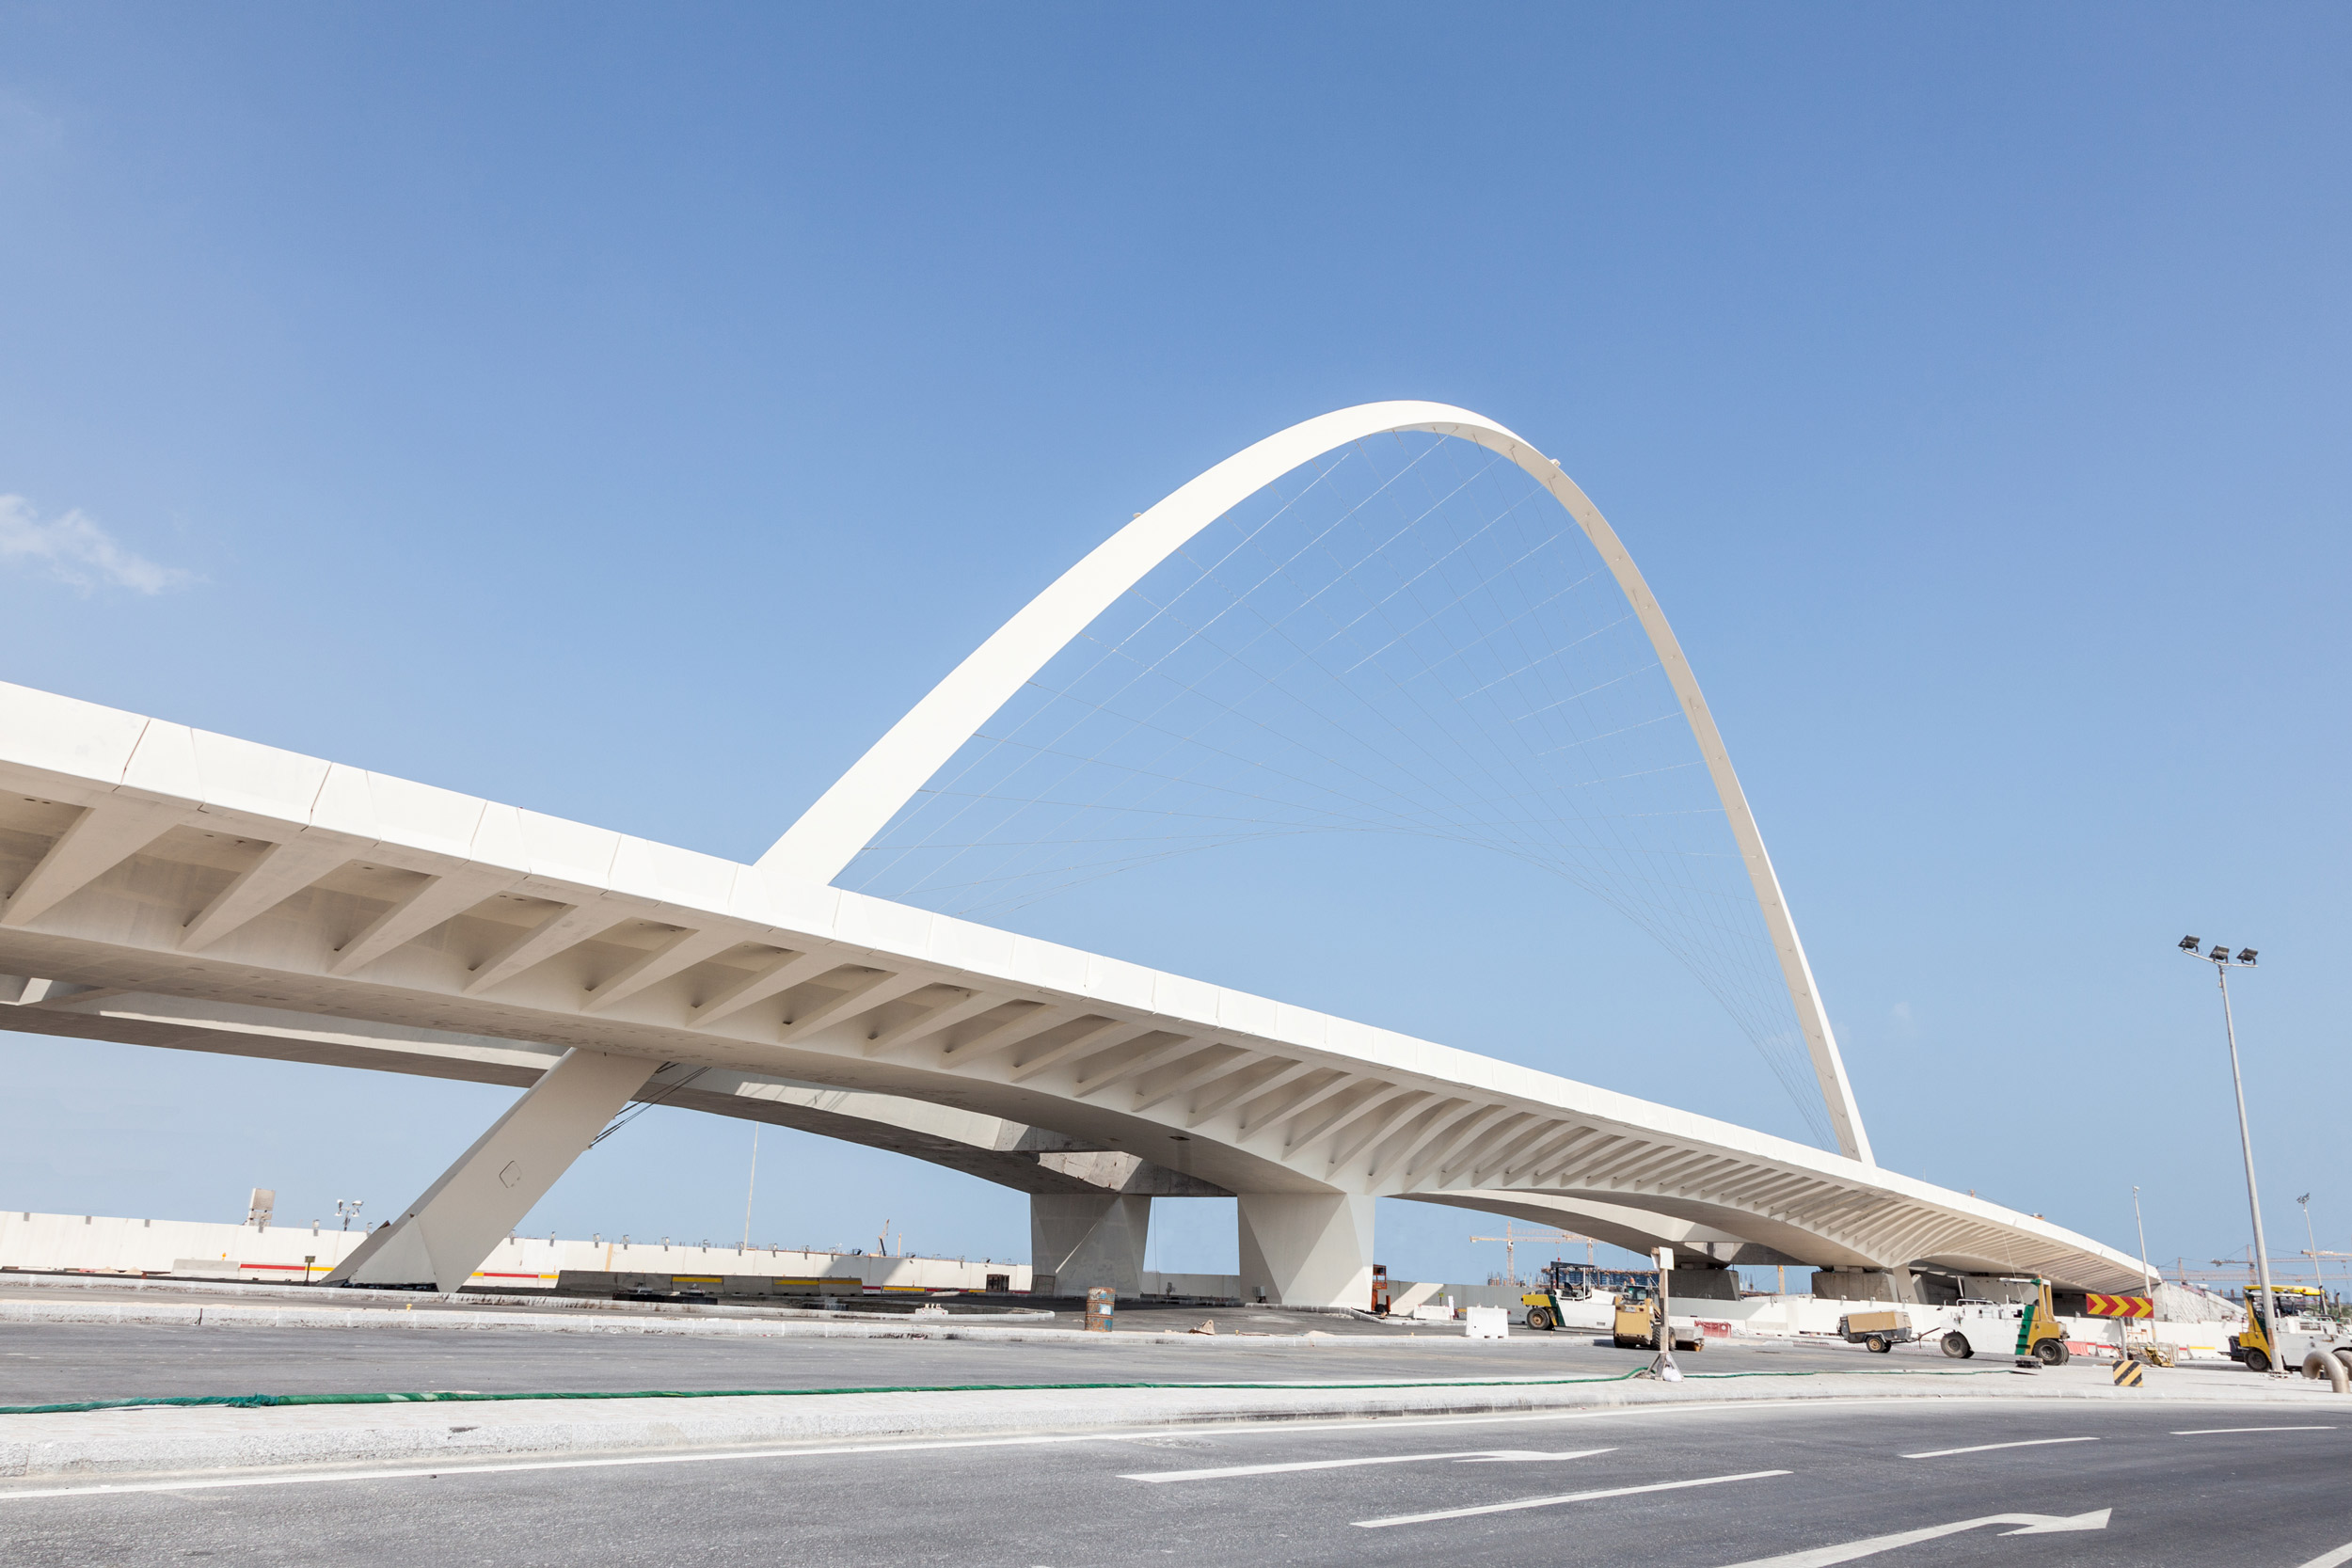 Read more about the project:  Marina Interchange